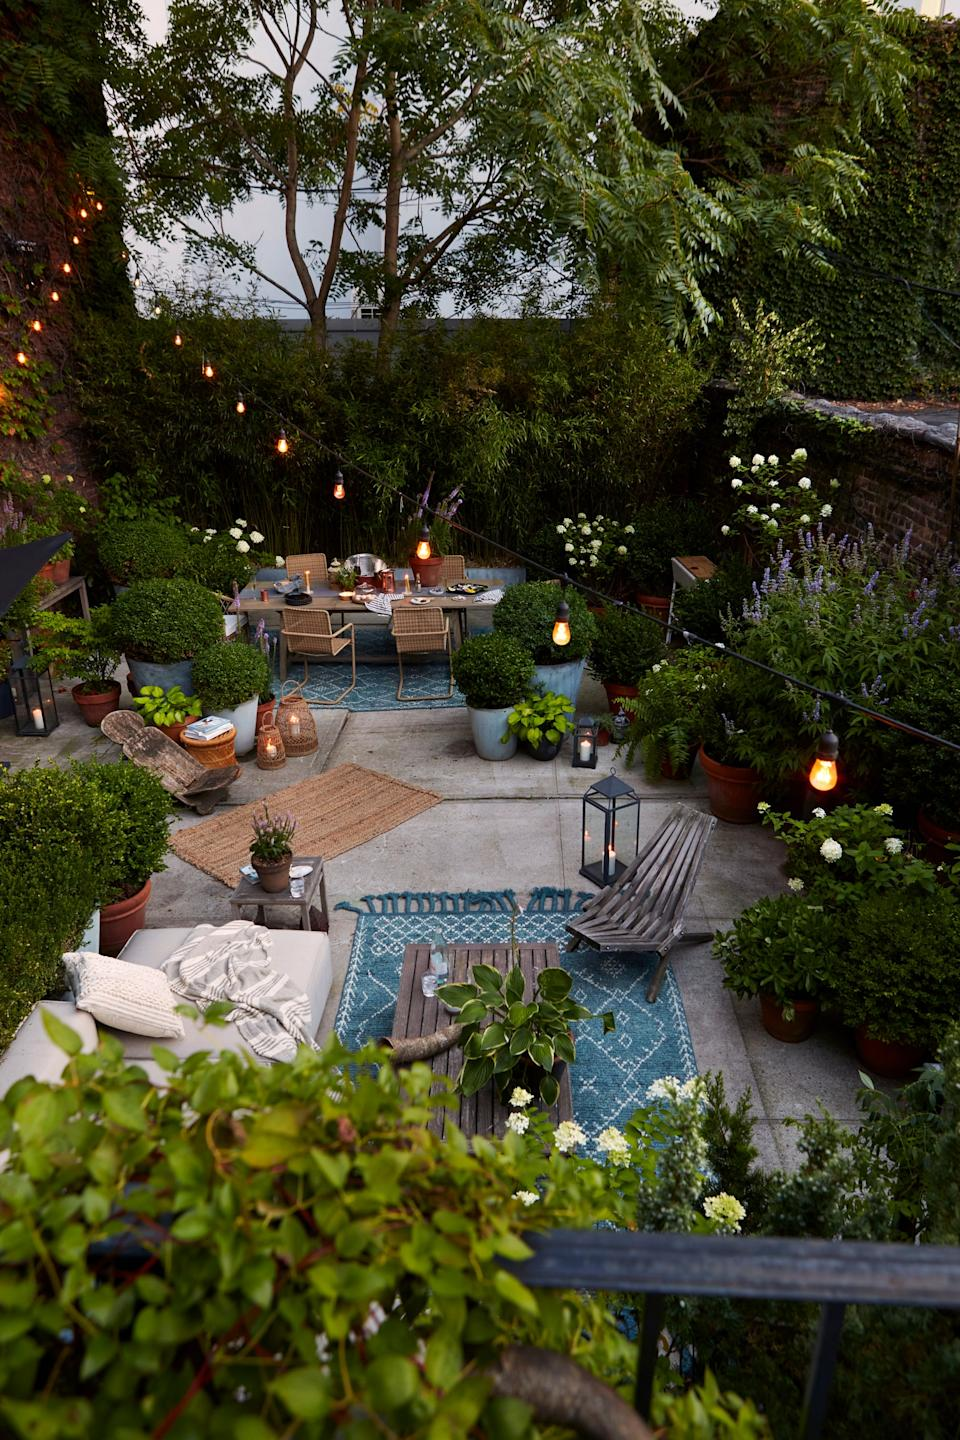 """<div class=""""caption""""> Mel's backyard is primarily composed of concrete and surrounded by brick, but she wanted the space to be lush. So her main objective was to use variations of greenery and textures to play off the hard textures. </div> <cite class=""""credit"""">Photography: Dane Tashima</cite>"""